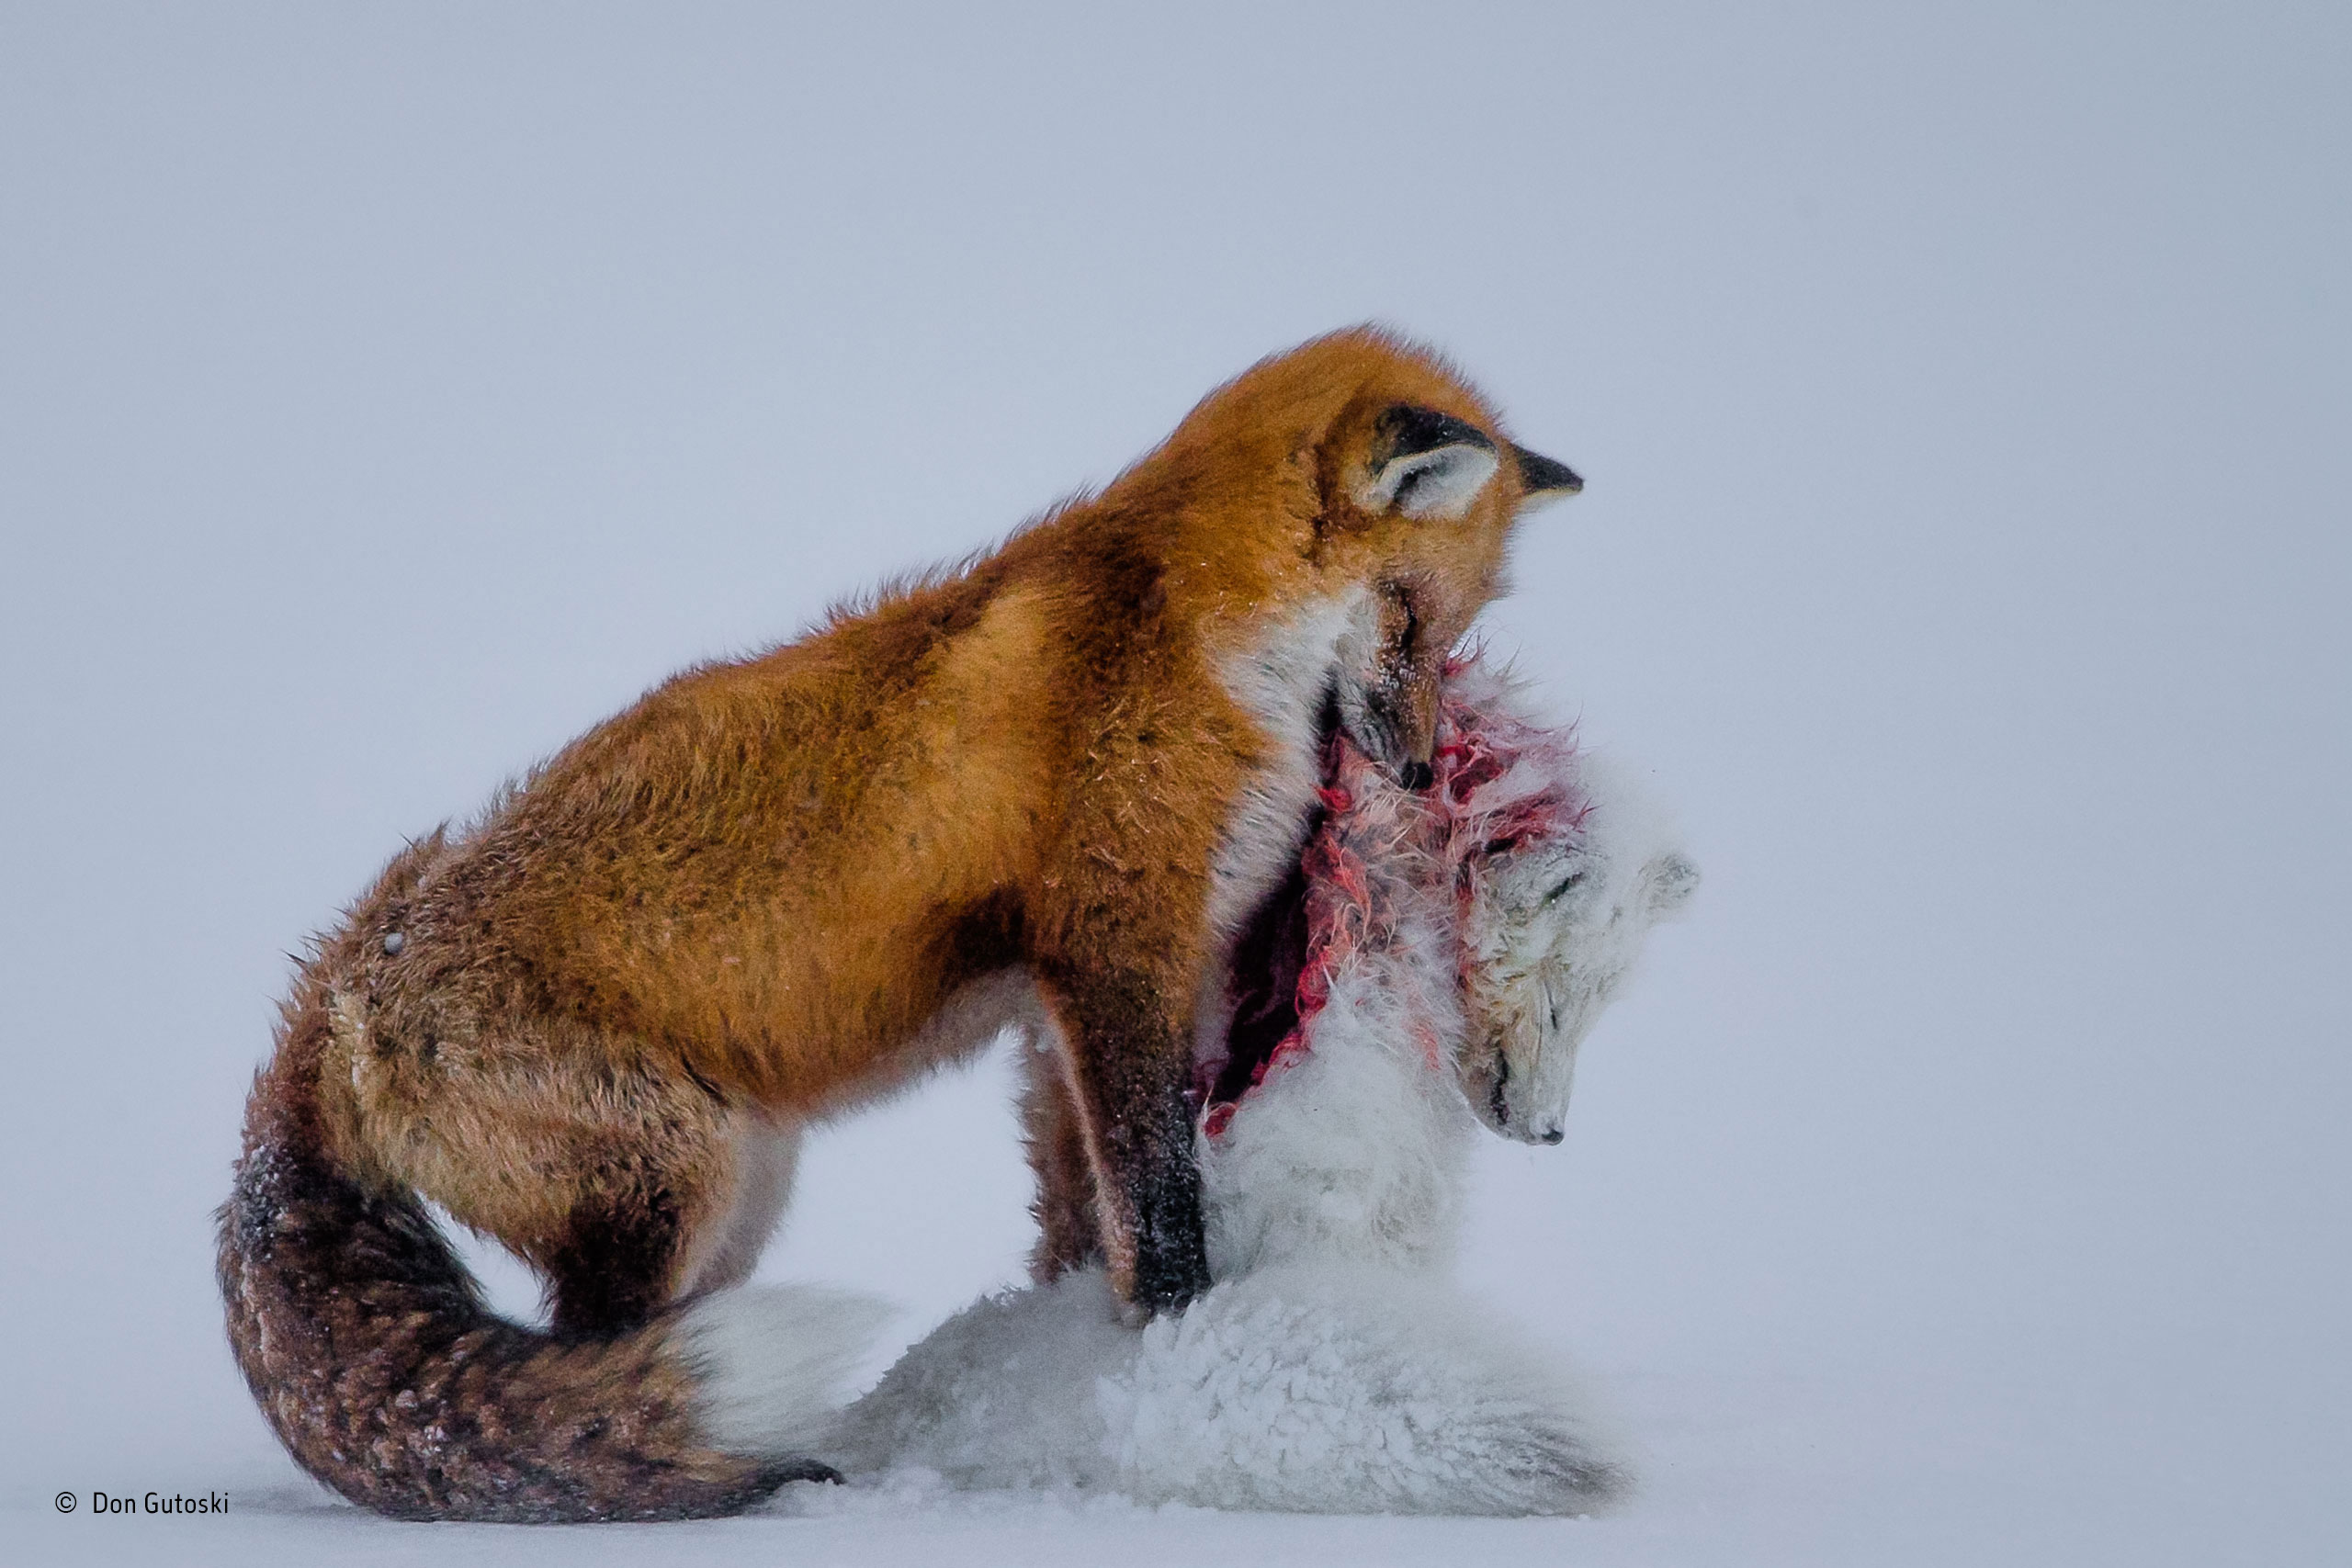 Wildlife Photographer of the Year 2015 Grand title winner